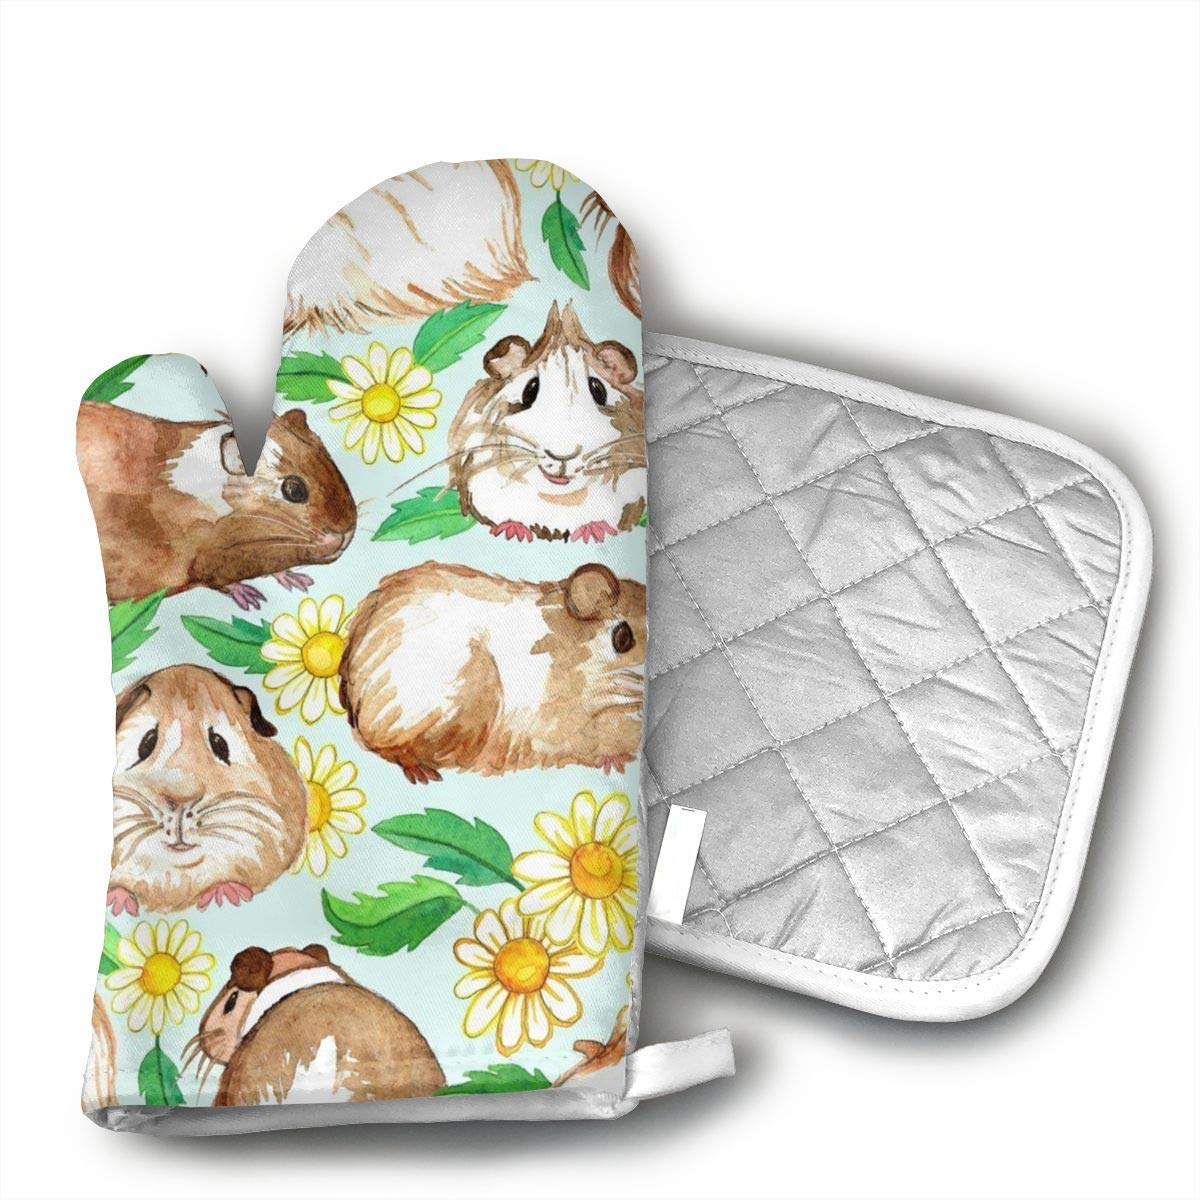 Wiqo9 Guinea Pigs and Daisies Oven Mitts and Pot Holders Kitchen Mitten Cooking Gloves,Cooking, Baking, BBQ.